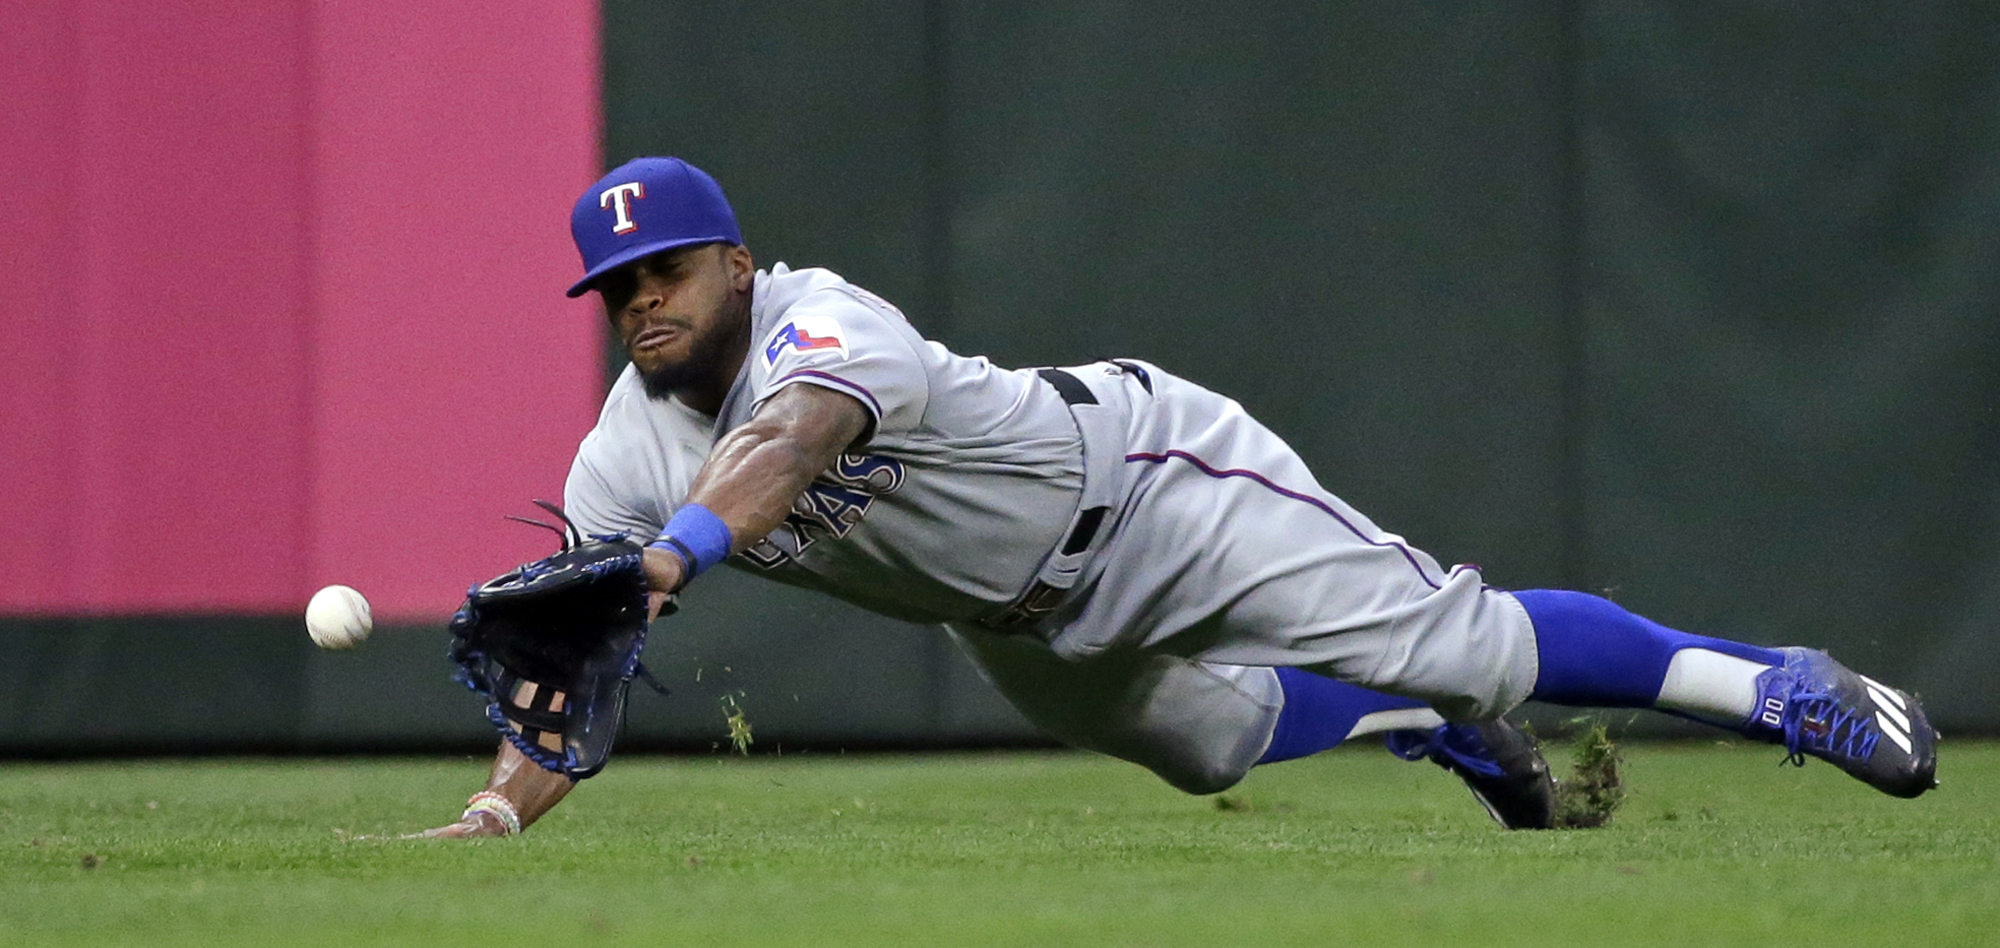 Texas Rangers center fielder Delino DeShields dives for, but misses, a double by Seattle Mariners' Seth Smith in the first inning of a baseball game Wednesday, Sept. 7, 2016, in Seattle. (AP Photo/Elaine Thompson)